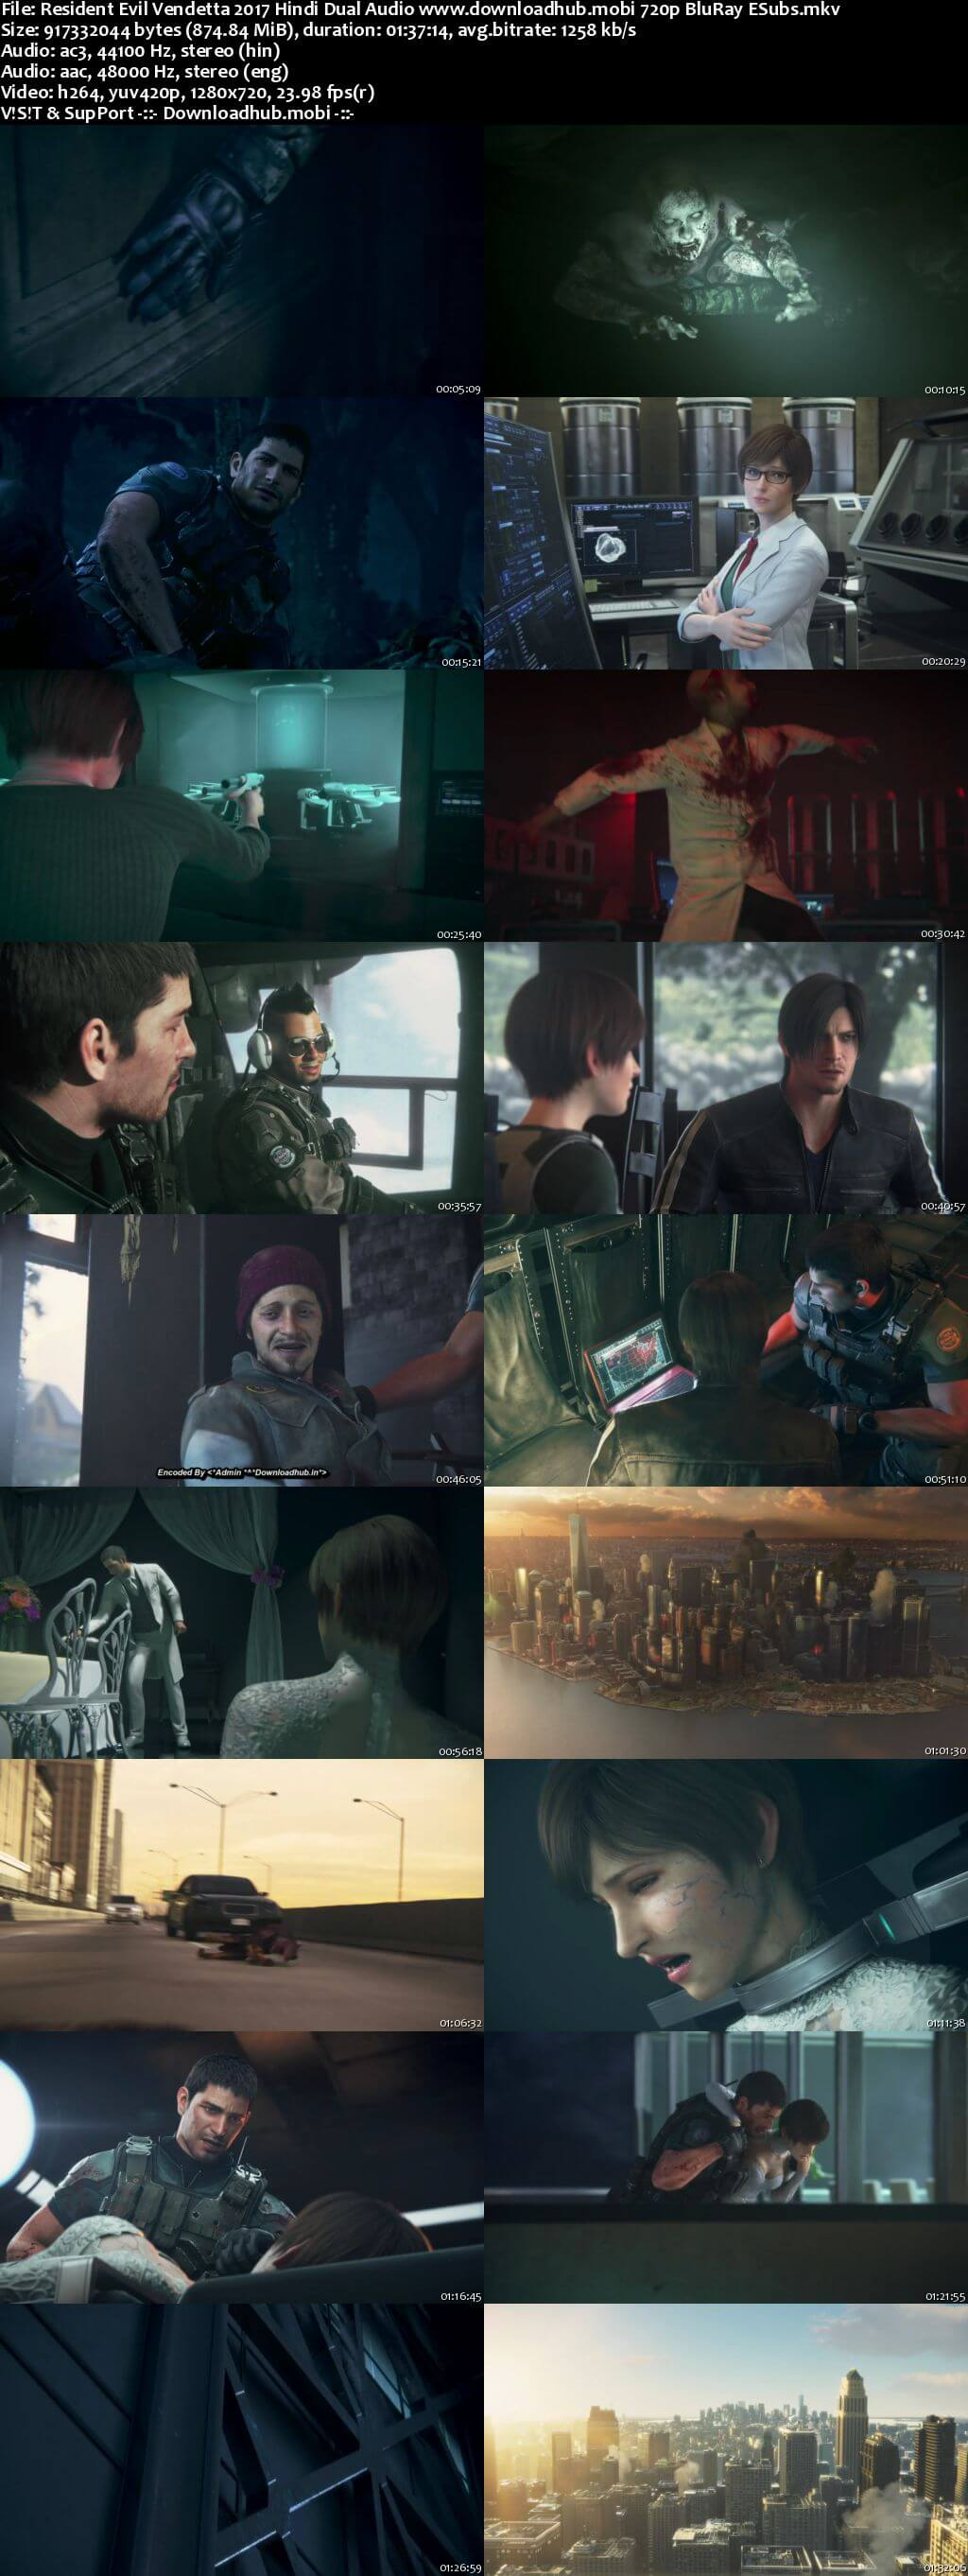 Resident Evil Vendetta 2017 Hindi Dual Audio 720p BluRay ESubs